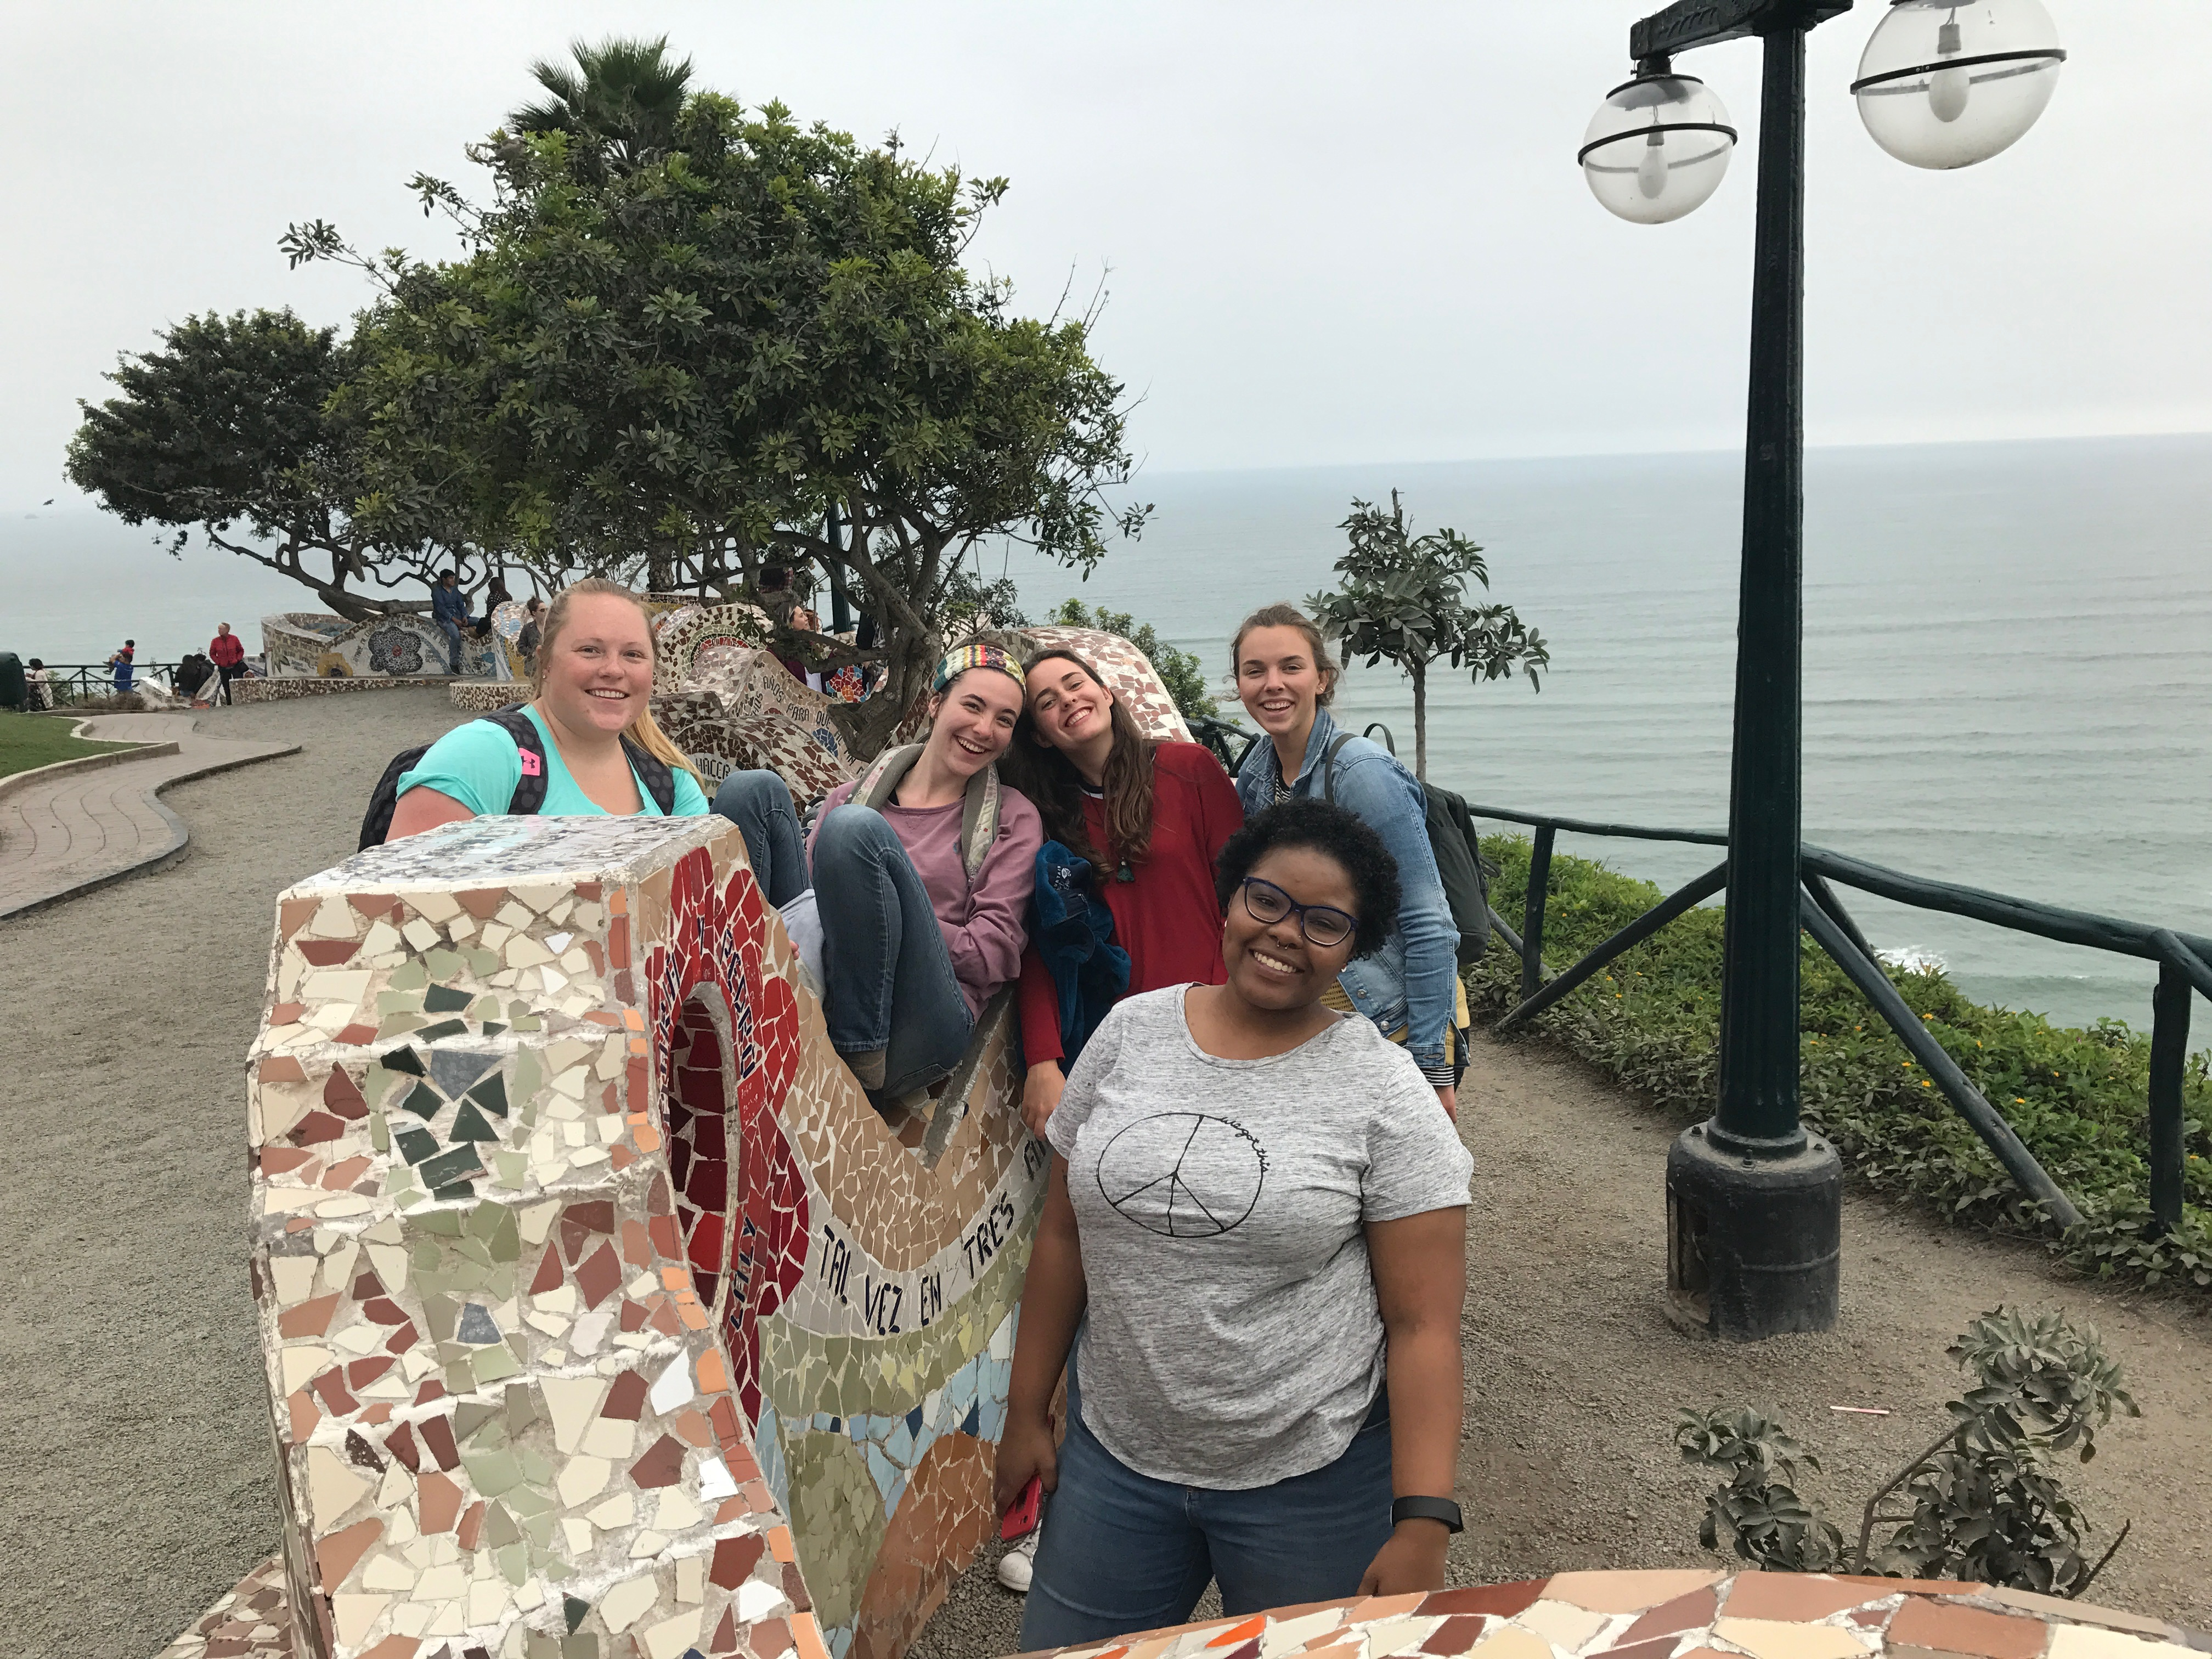 The 2017-2018 Young Adult Volunteers gather in Lima for orientation and quarterly retreats to build Christian community, reflect on their experiences and discern God´s call on their lives. From left to right (back): Kristen Trohkimoinen, Alyson Miller, Katie Hastings, Megan Koeneman; (front) Mielan Barnes. (Photo by Jed Koball)